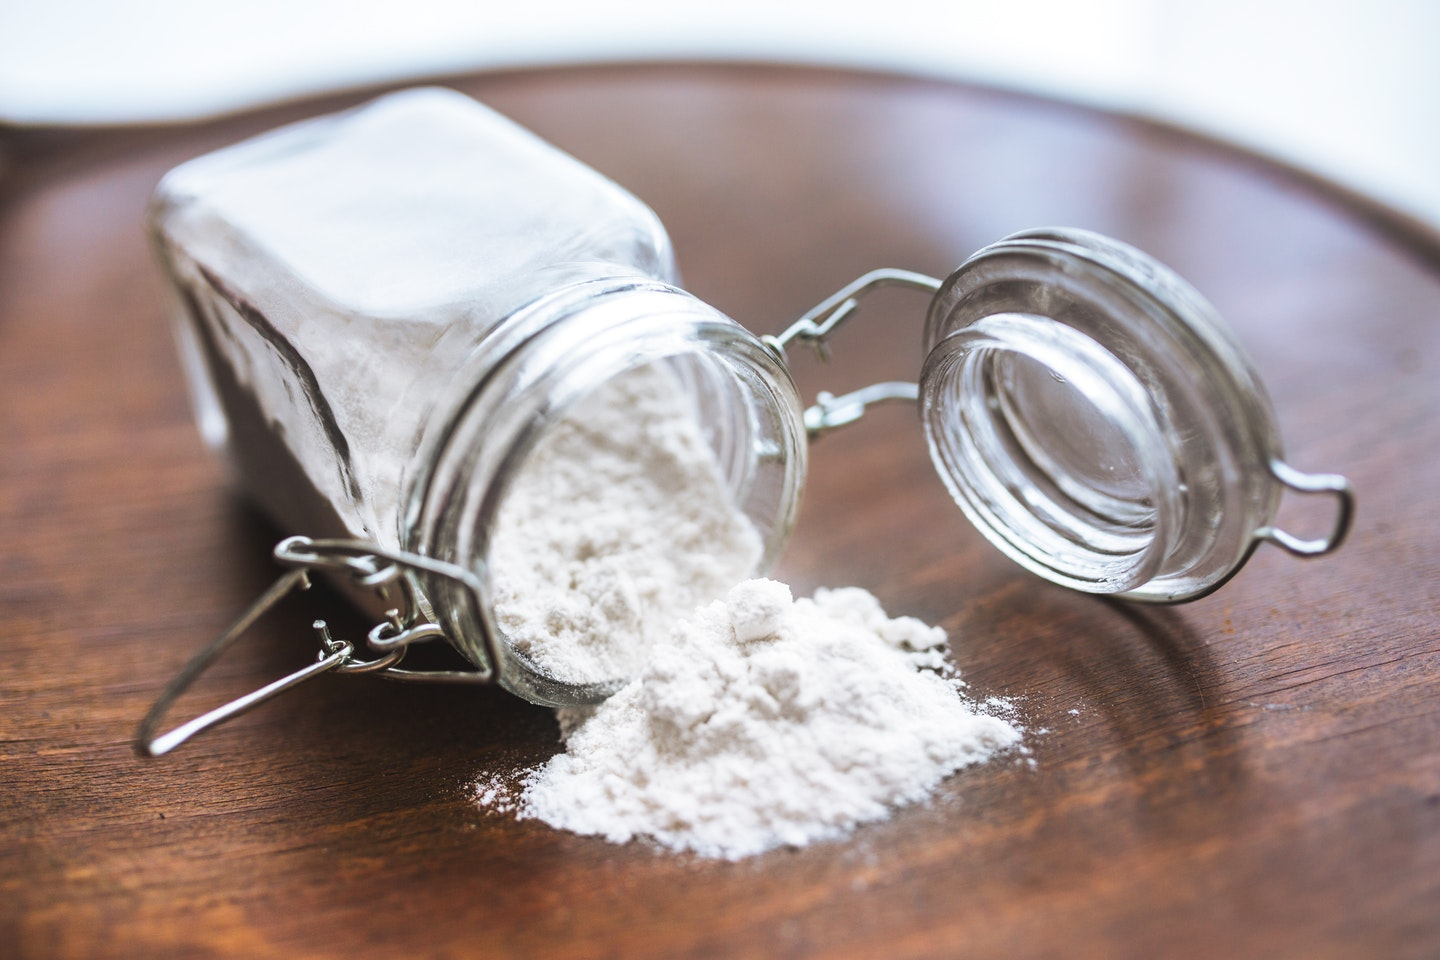 10 Unusual Things You Can Use Your Baking Soda For